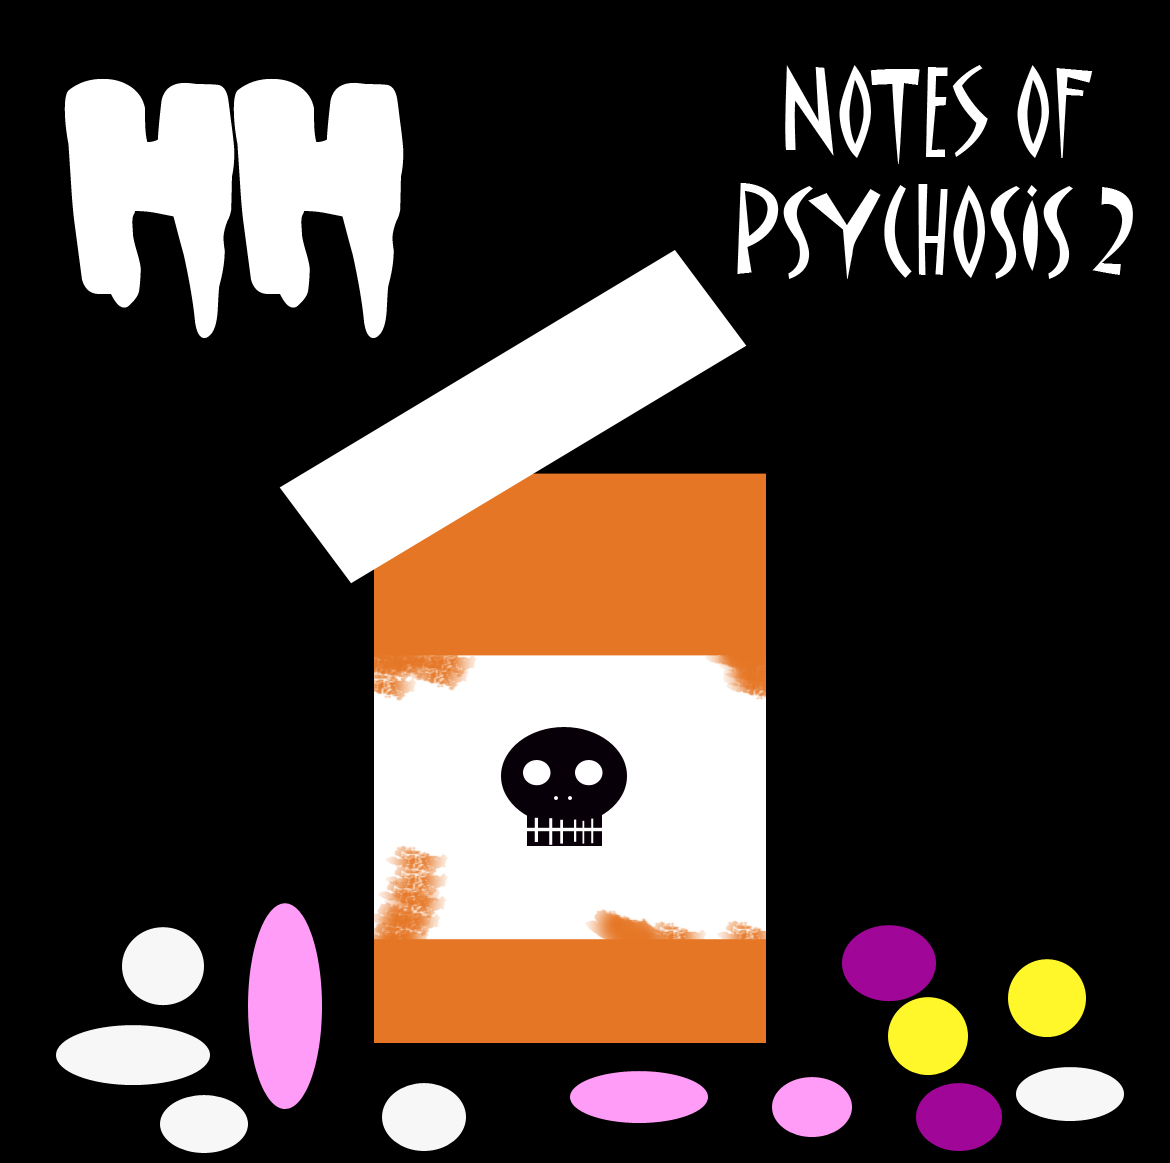 notes of psychosis 2 - Ultimate Guitar